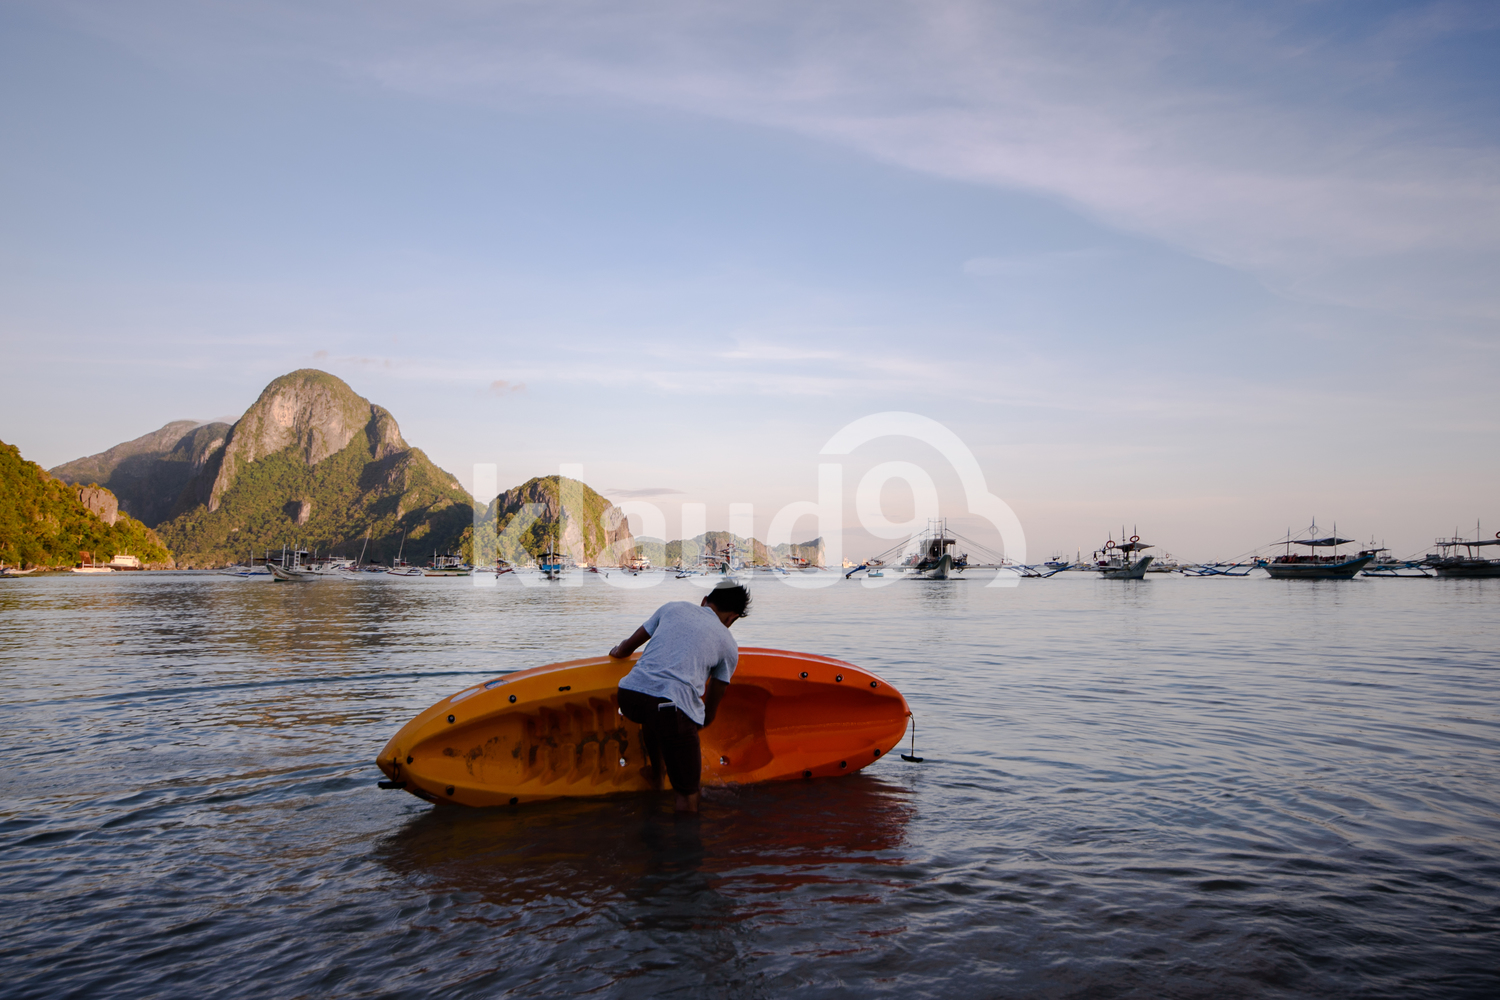 El Nido, Palawan, Philippines on early morning light